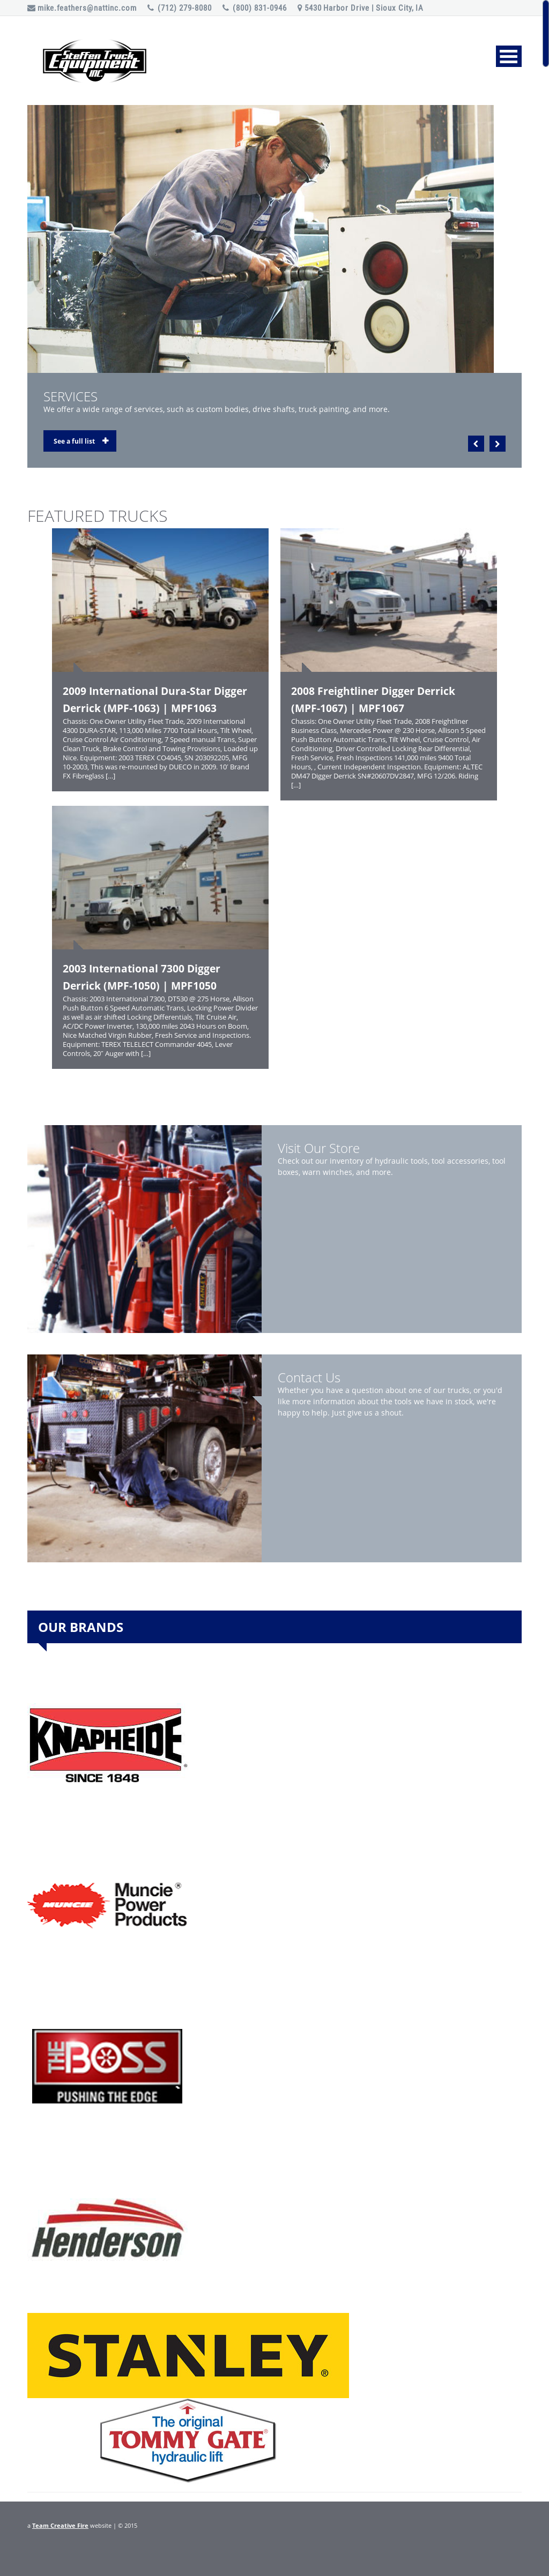 Steffen Truck Equipment Competitors, Revenue and Employees